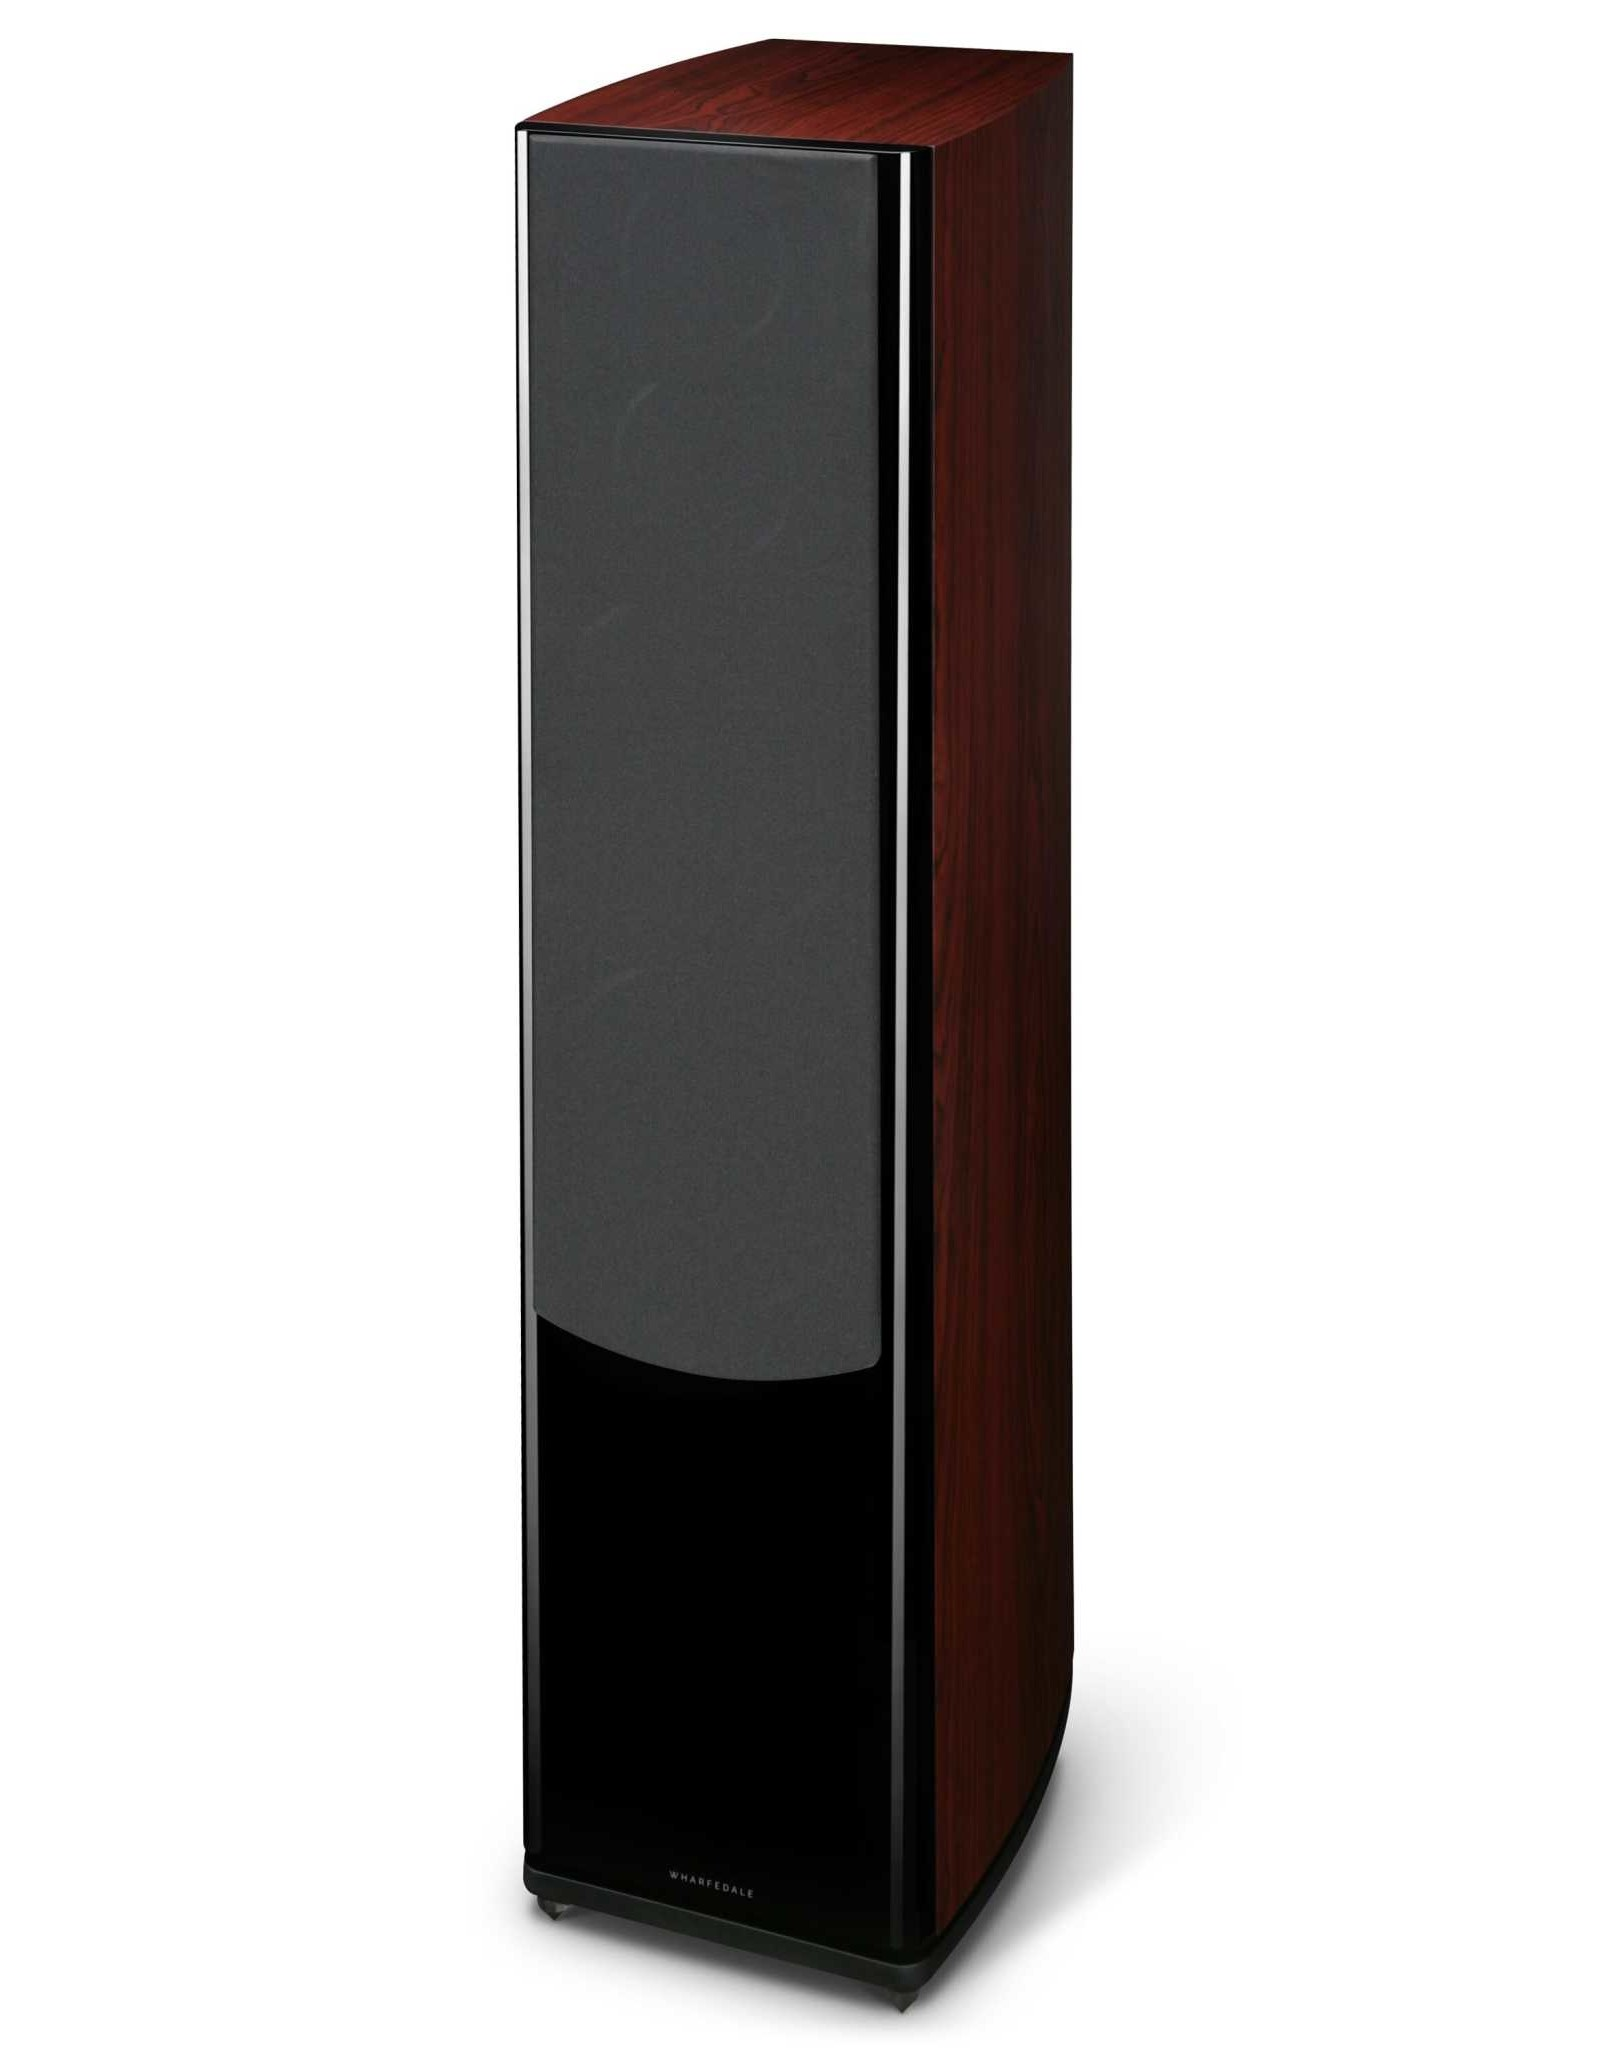 Wharfedale Wharfedale Diamond 11.5 Floorstanding Speakers